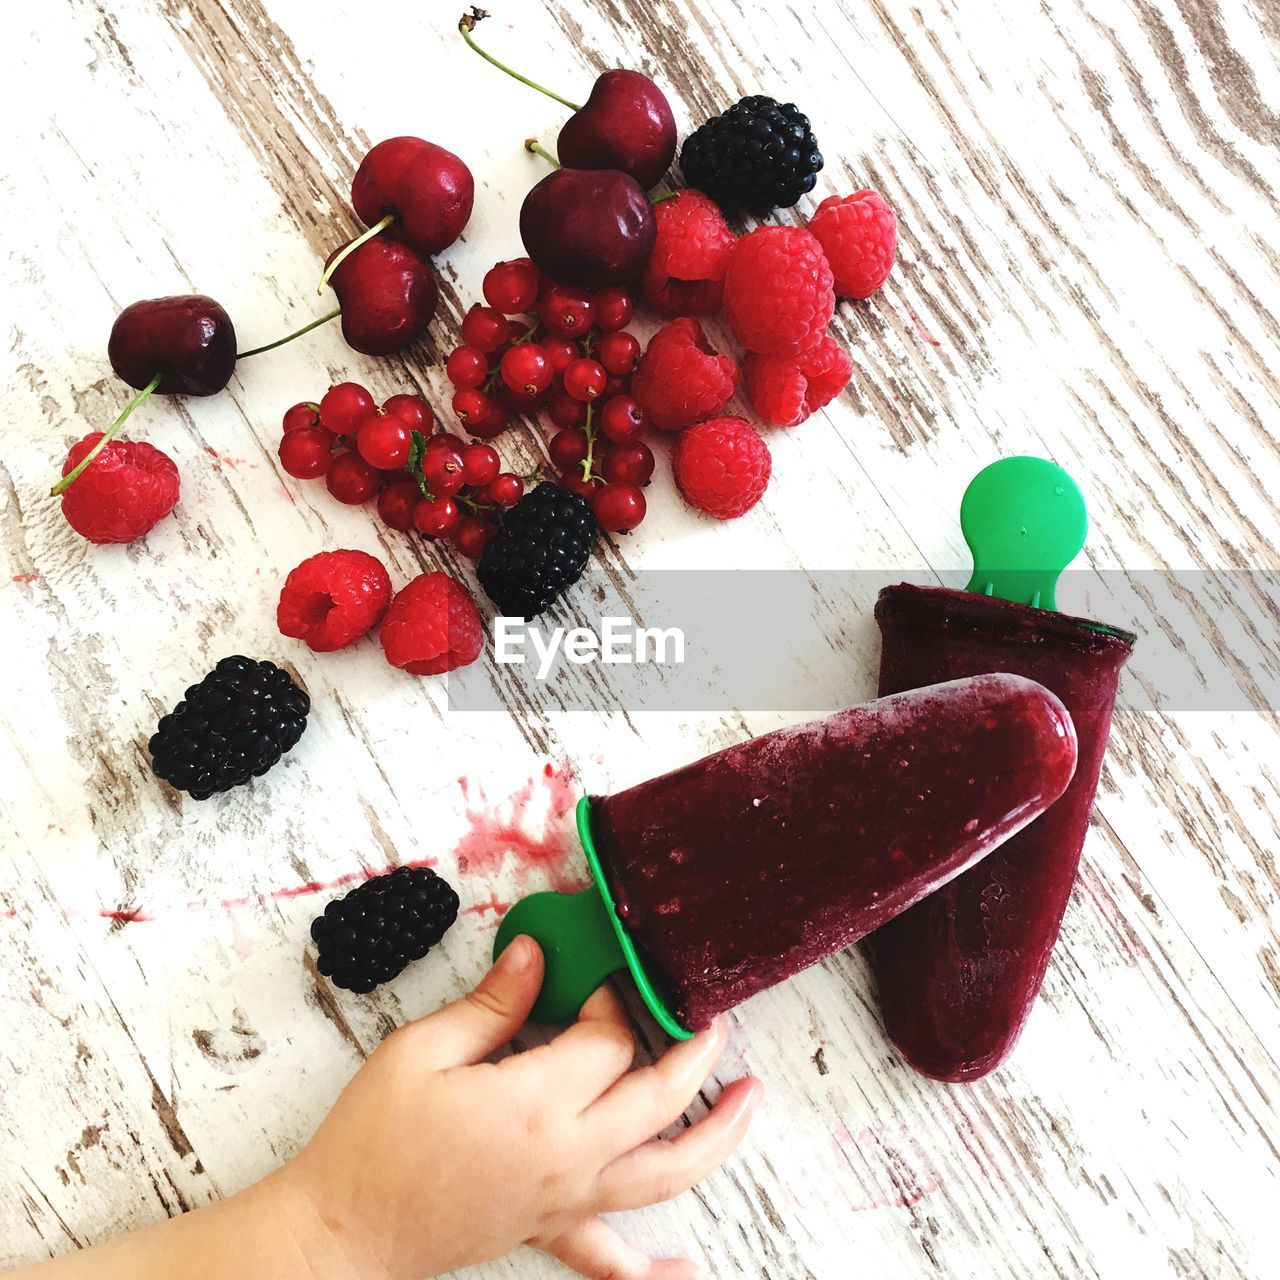 human hand, food, berry fruit, food and drink, fruit, hand, red, healthy eating, table, high angle view, human body part, indoors, freshness, real people, human finger, finger, one person, wood - material, wellbeing, body part, temptation, nail